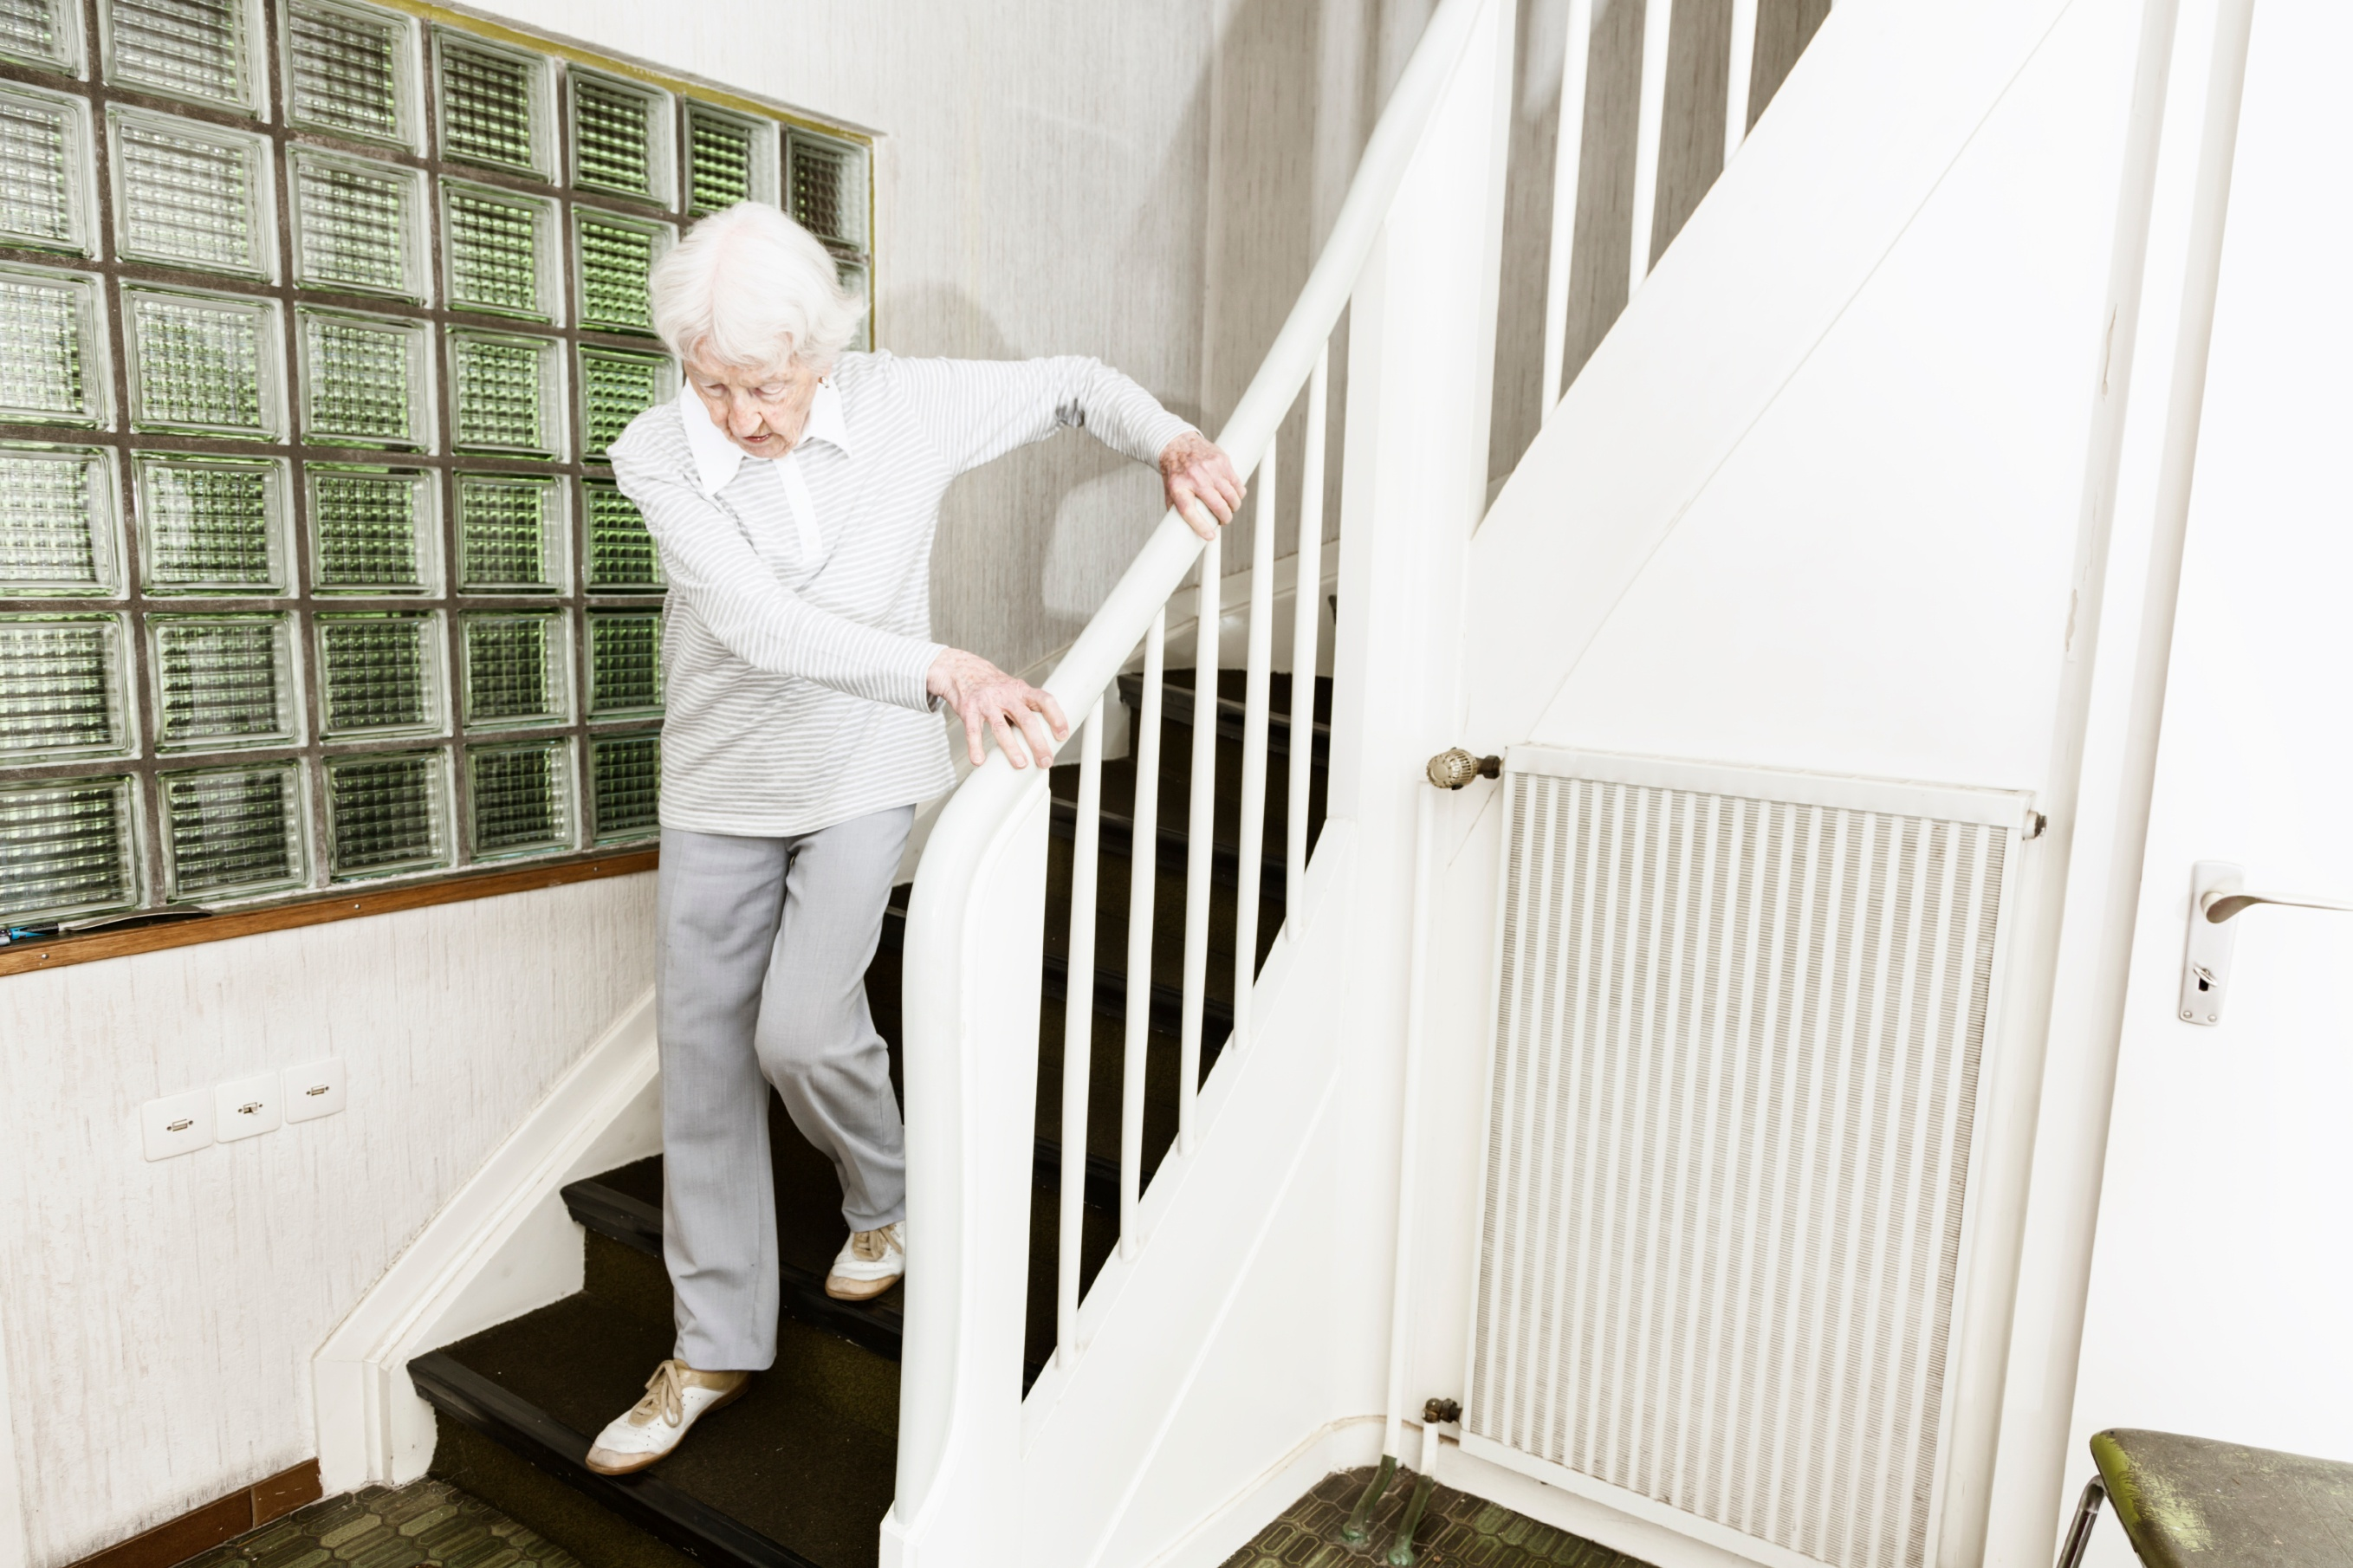 senior woman struggling to get down the stairs in her home